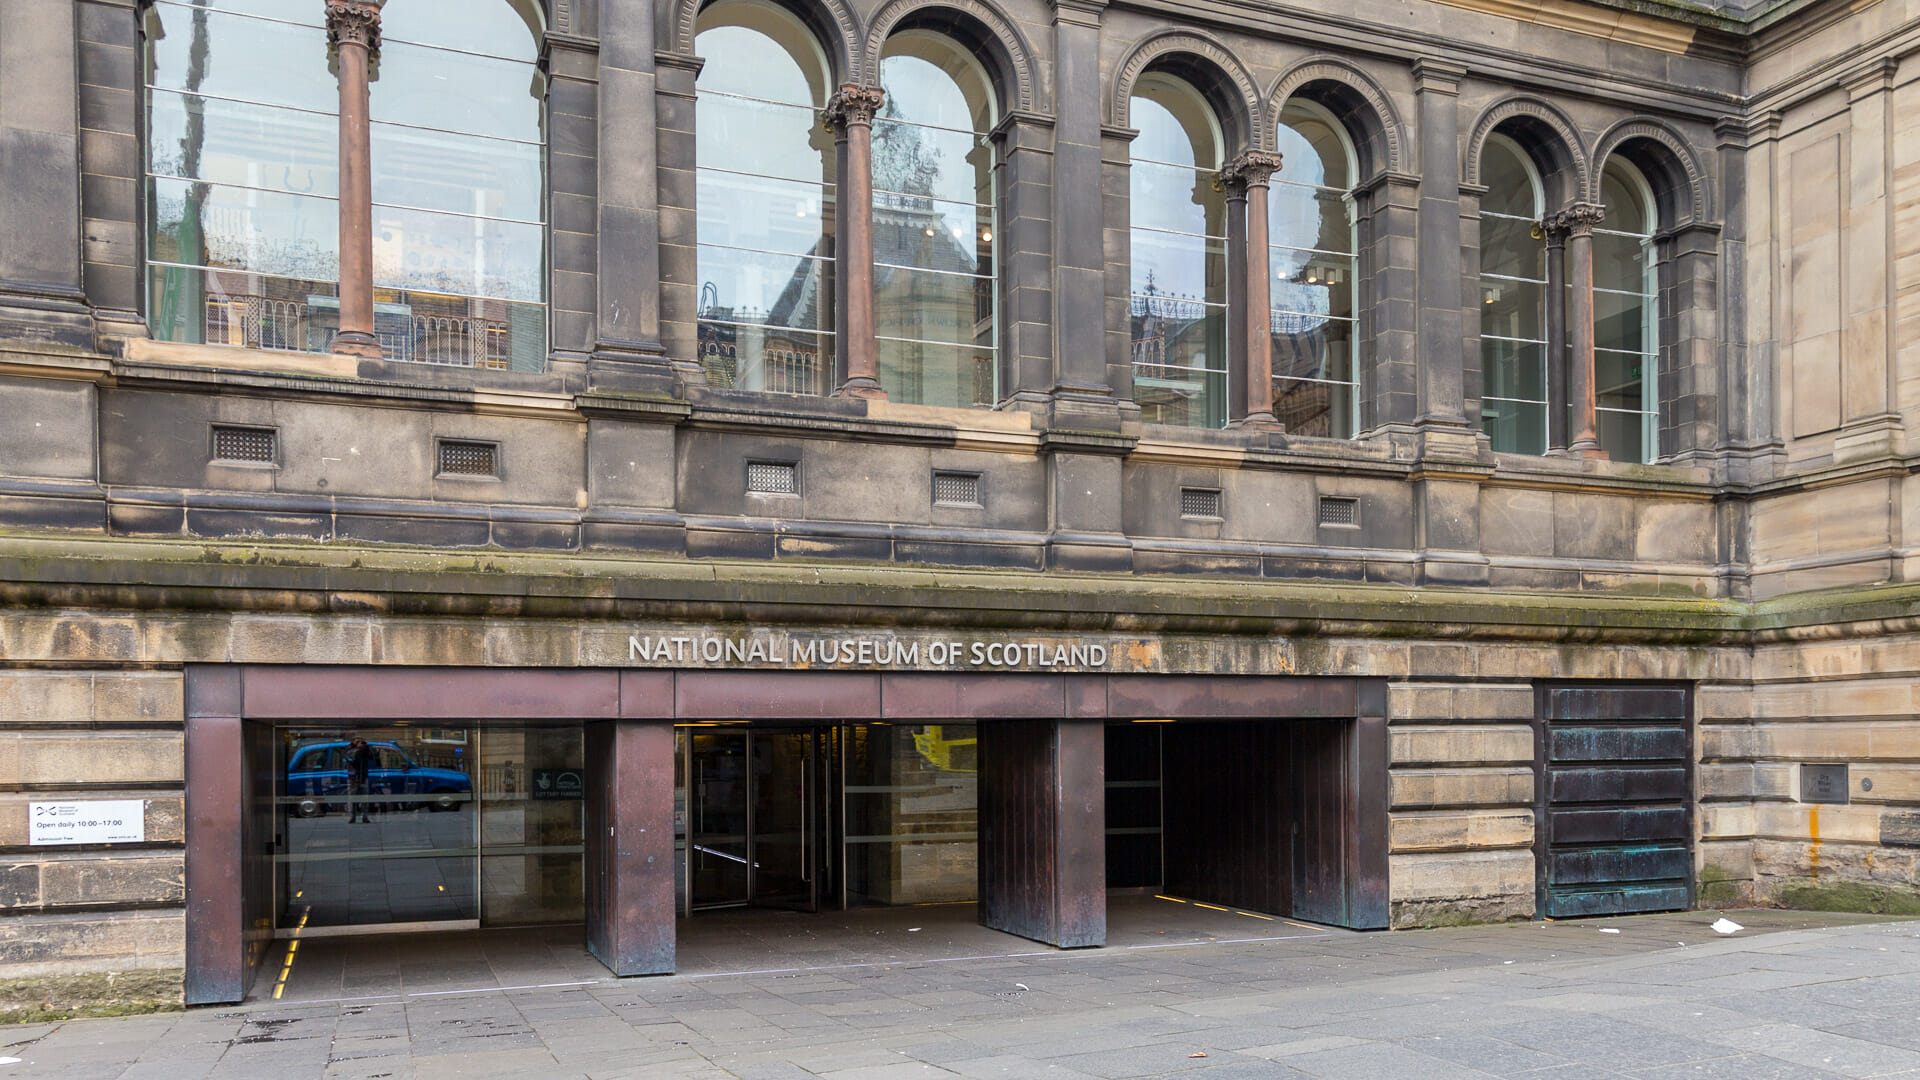 Eingang des National Museum of Scotland